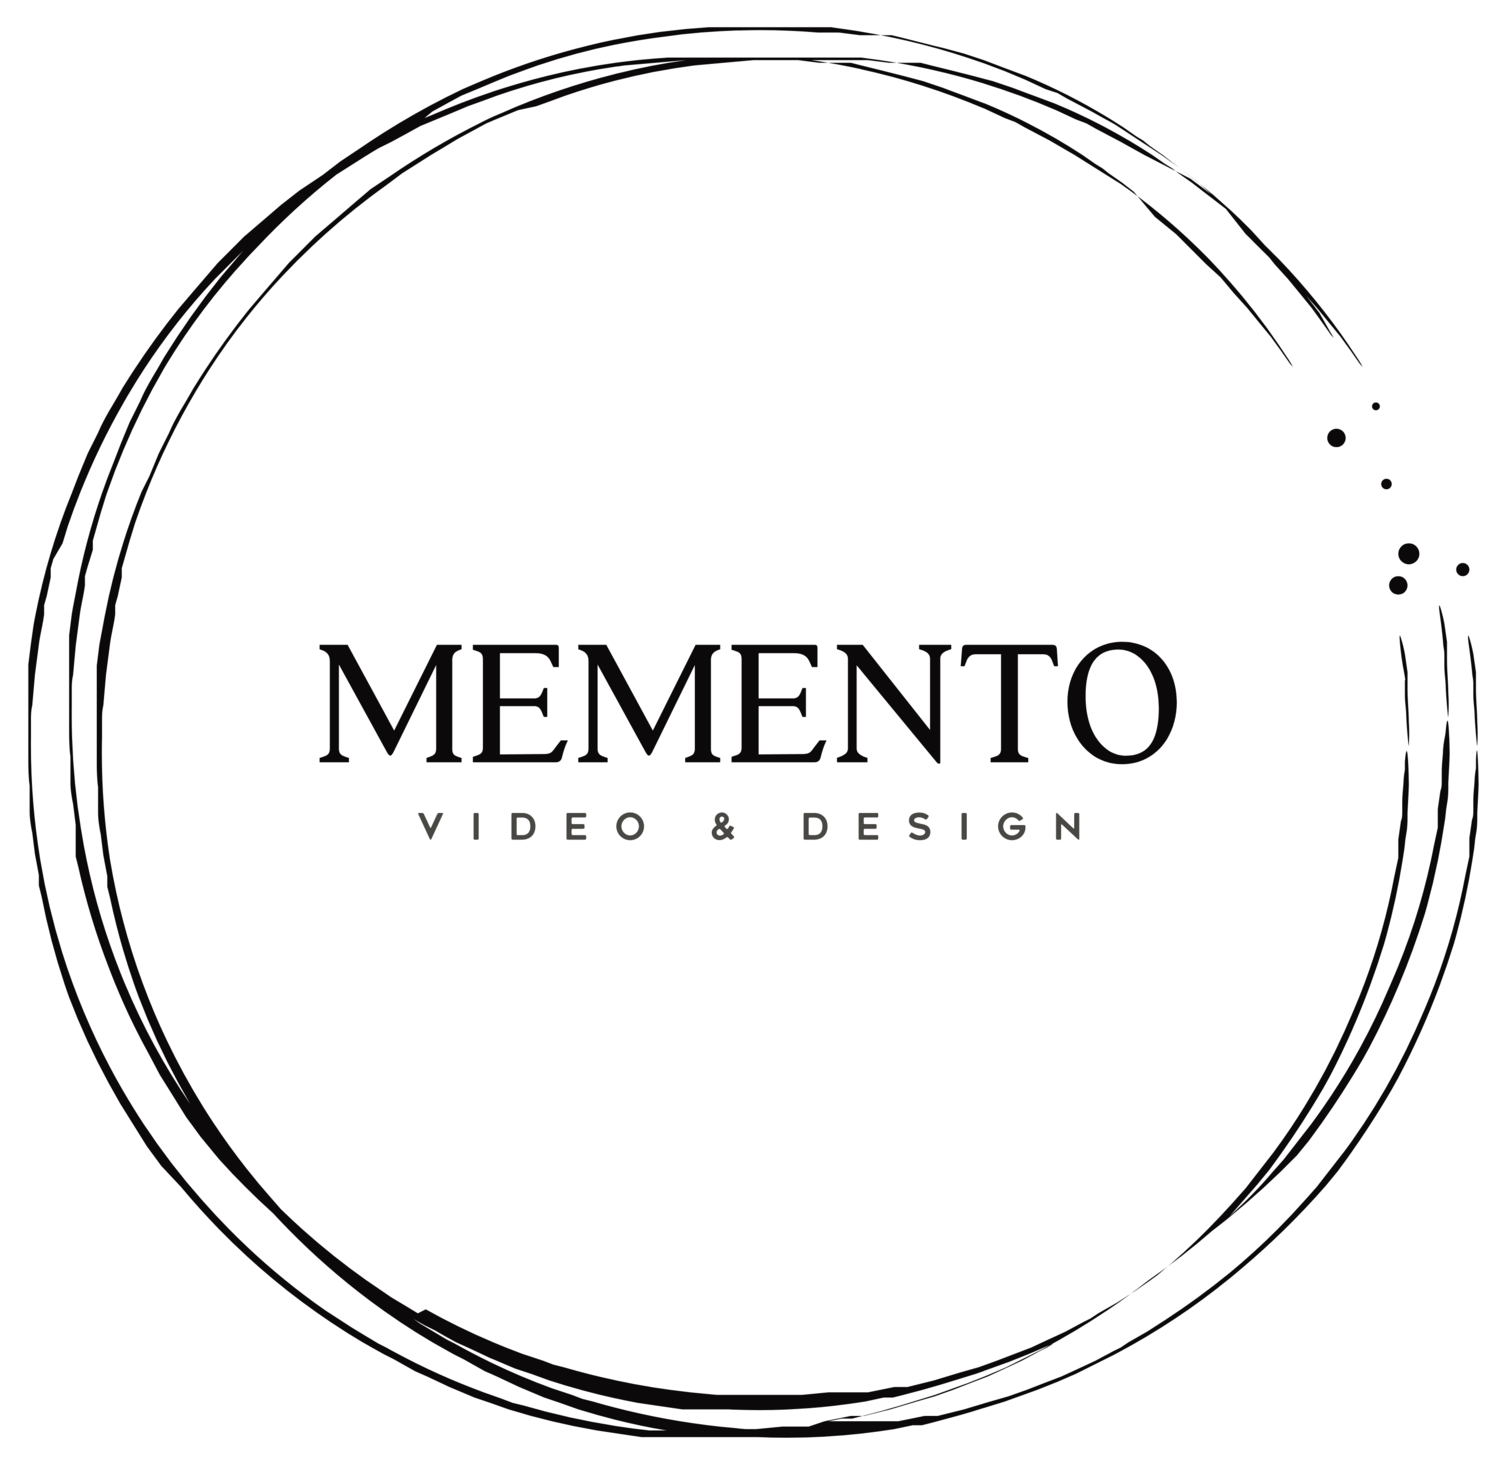 Memento Video & Design